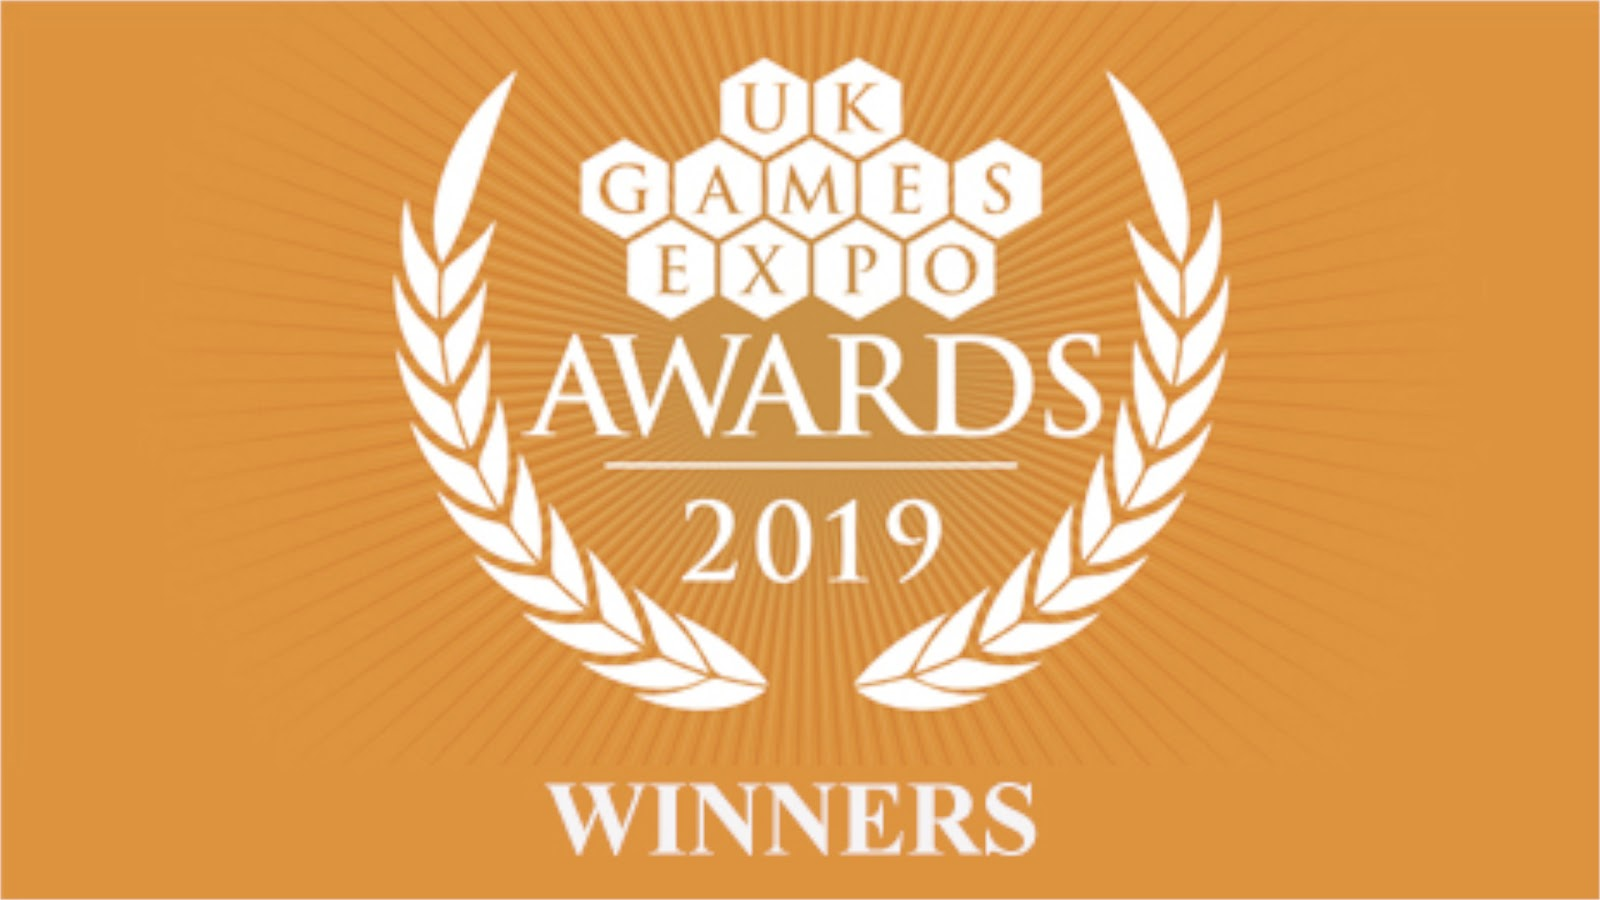 News Collider - Board Game News UK Games Expo Award Winners